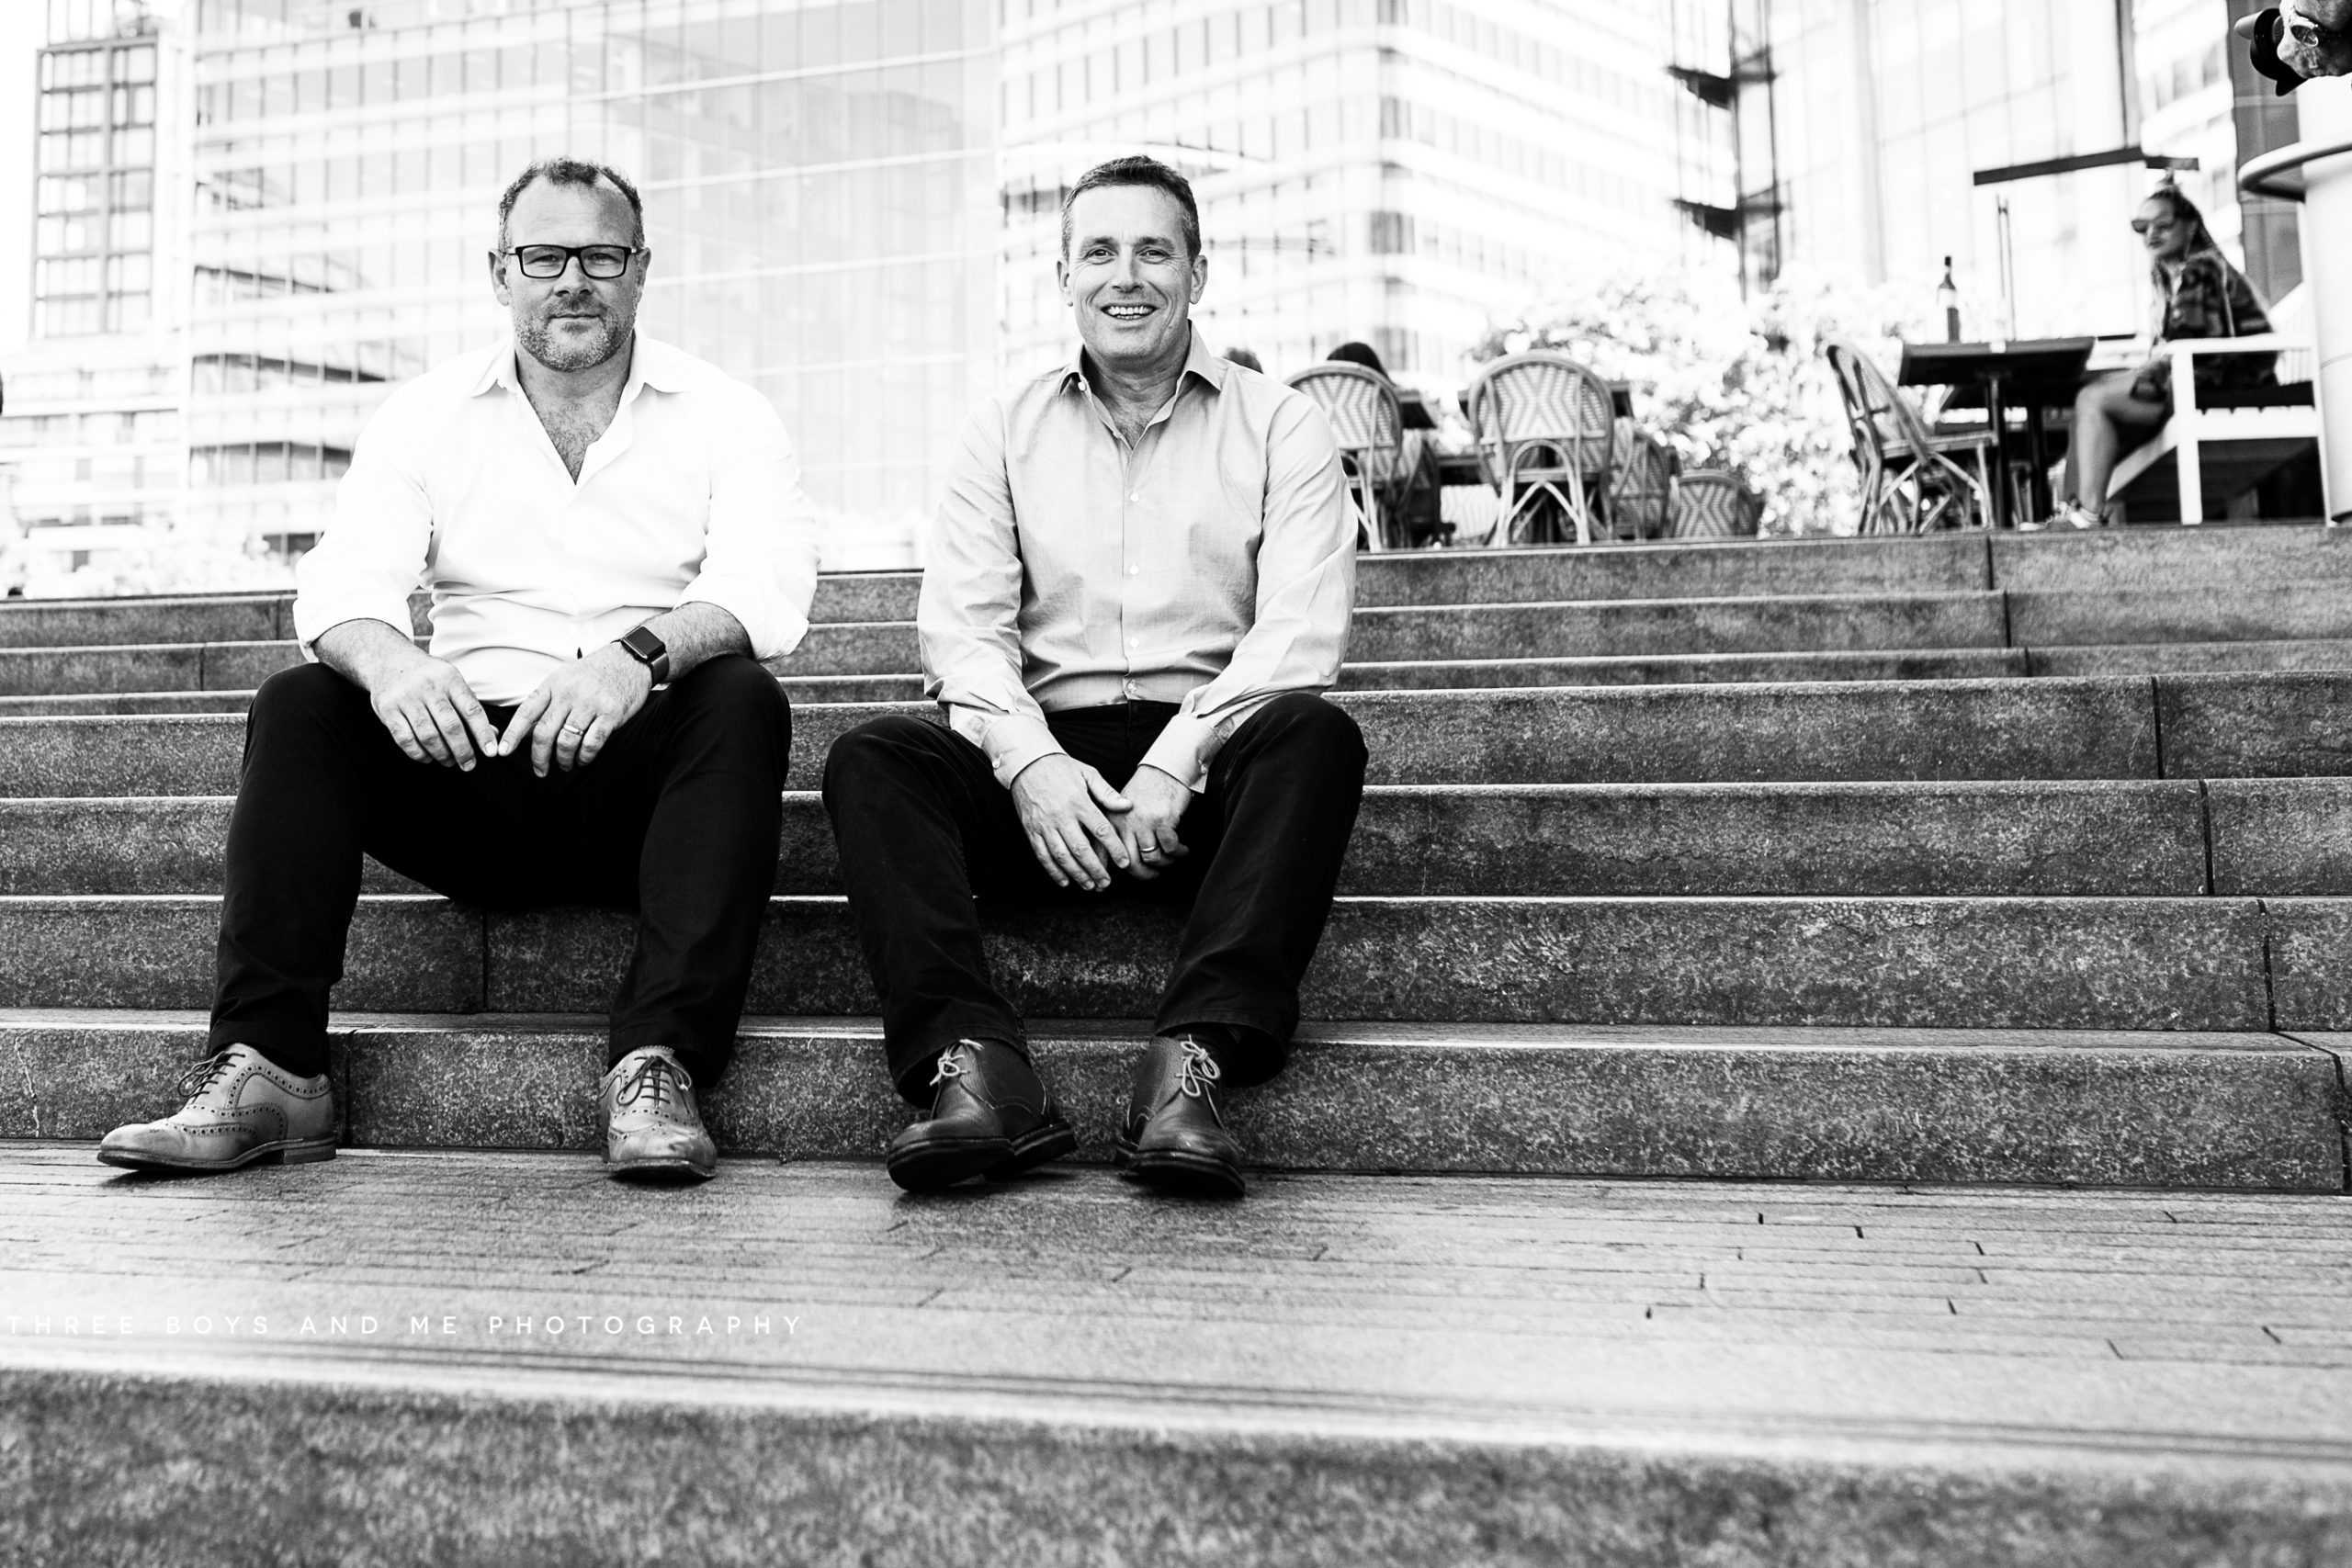 company directors sitting on stone steps at London Bridge having a chat on their commercial meet the team photoshoot